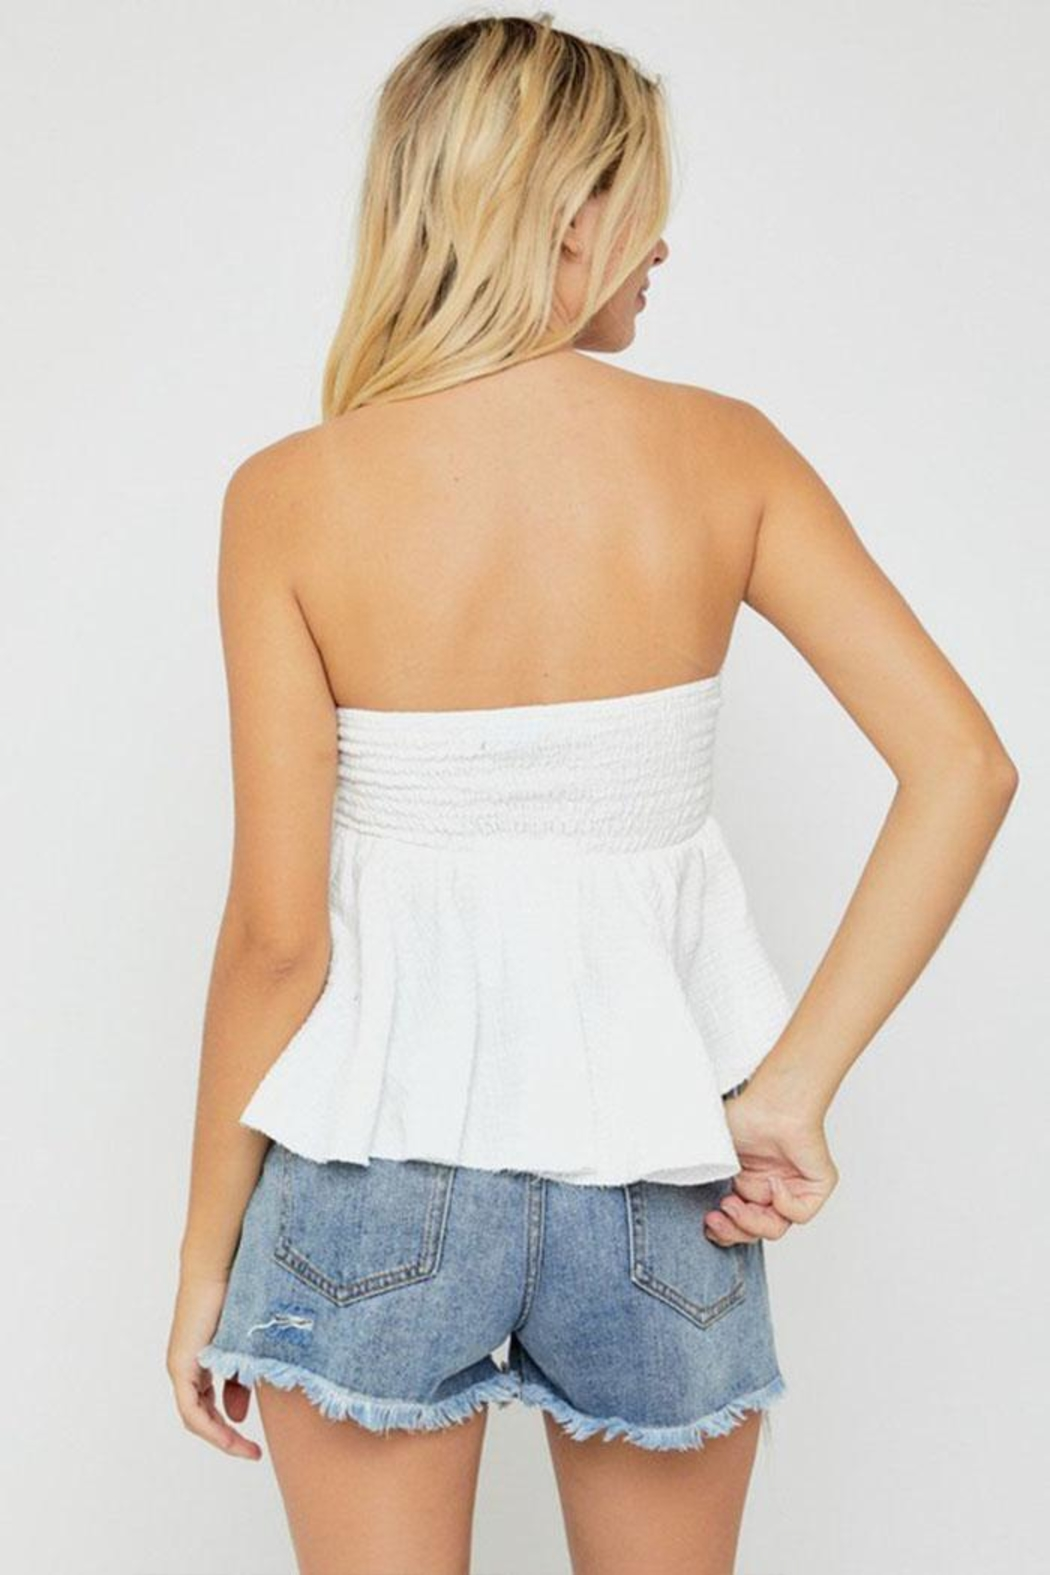 hers and mine Strapless Peplum Top - Back Cropped Image